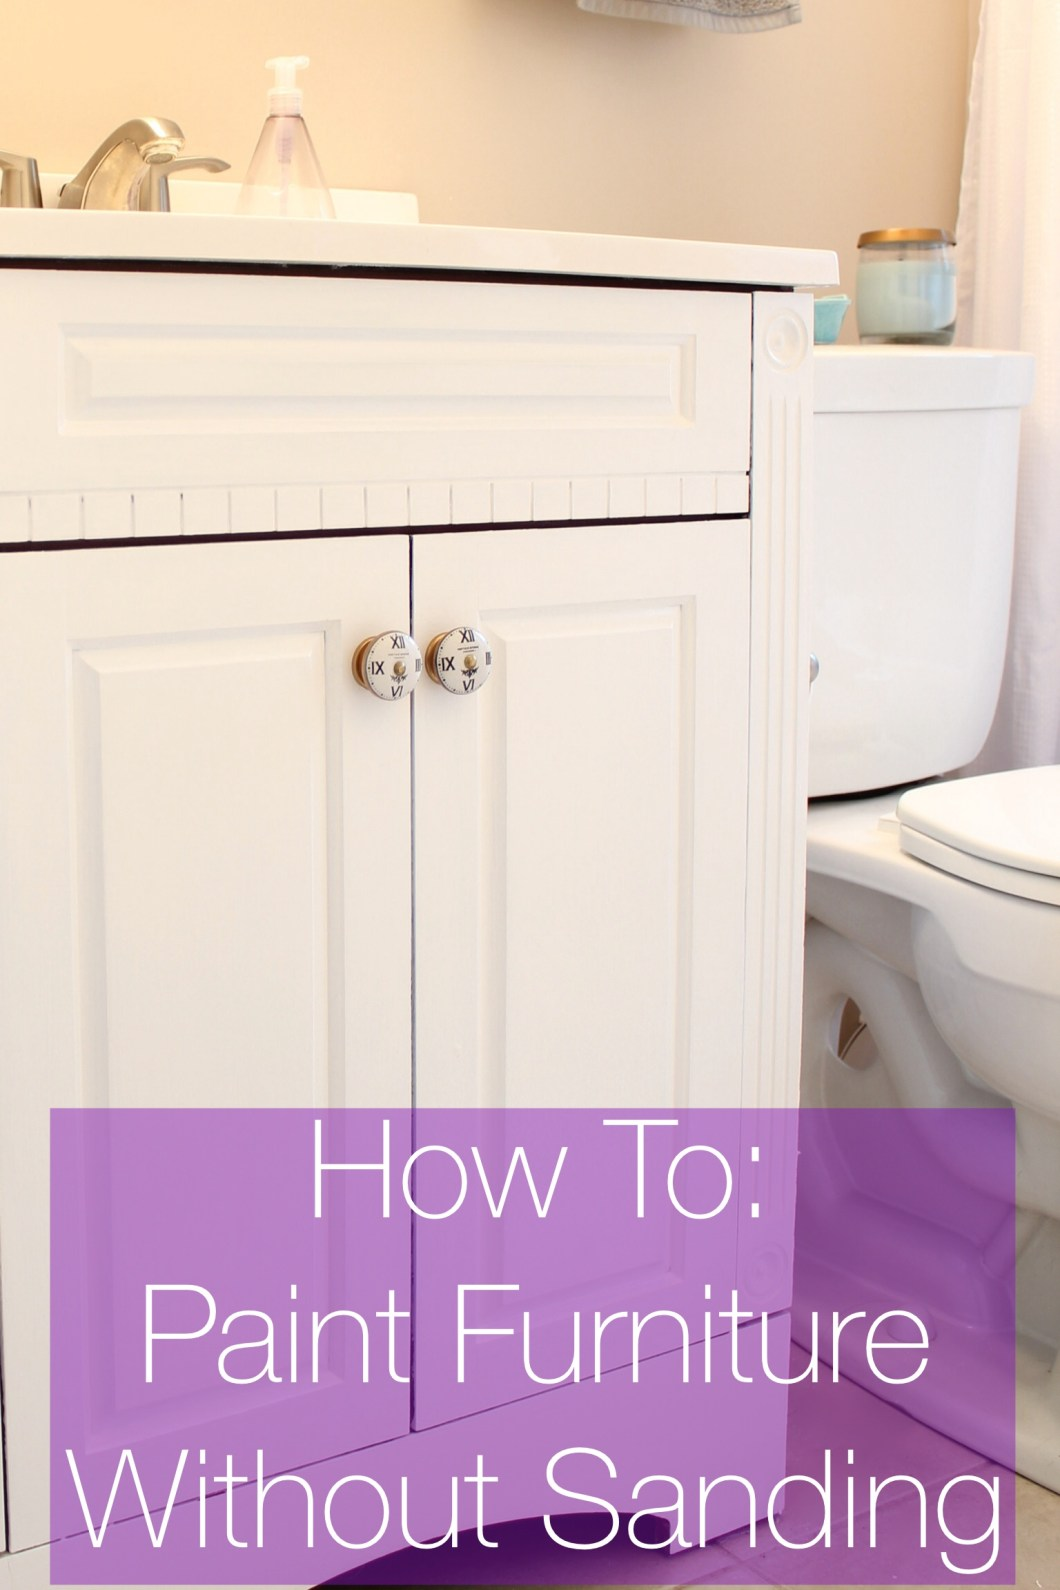 How To Paint Bathroom Cabinets White Without Sanding